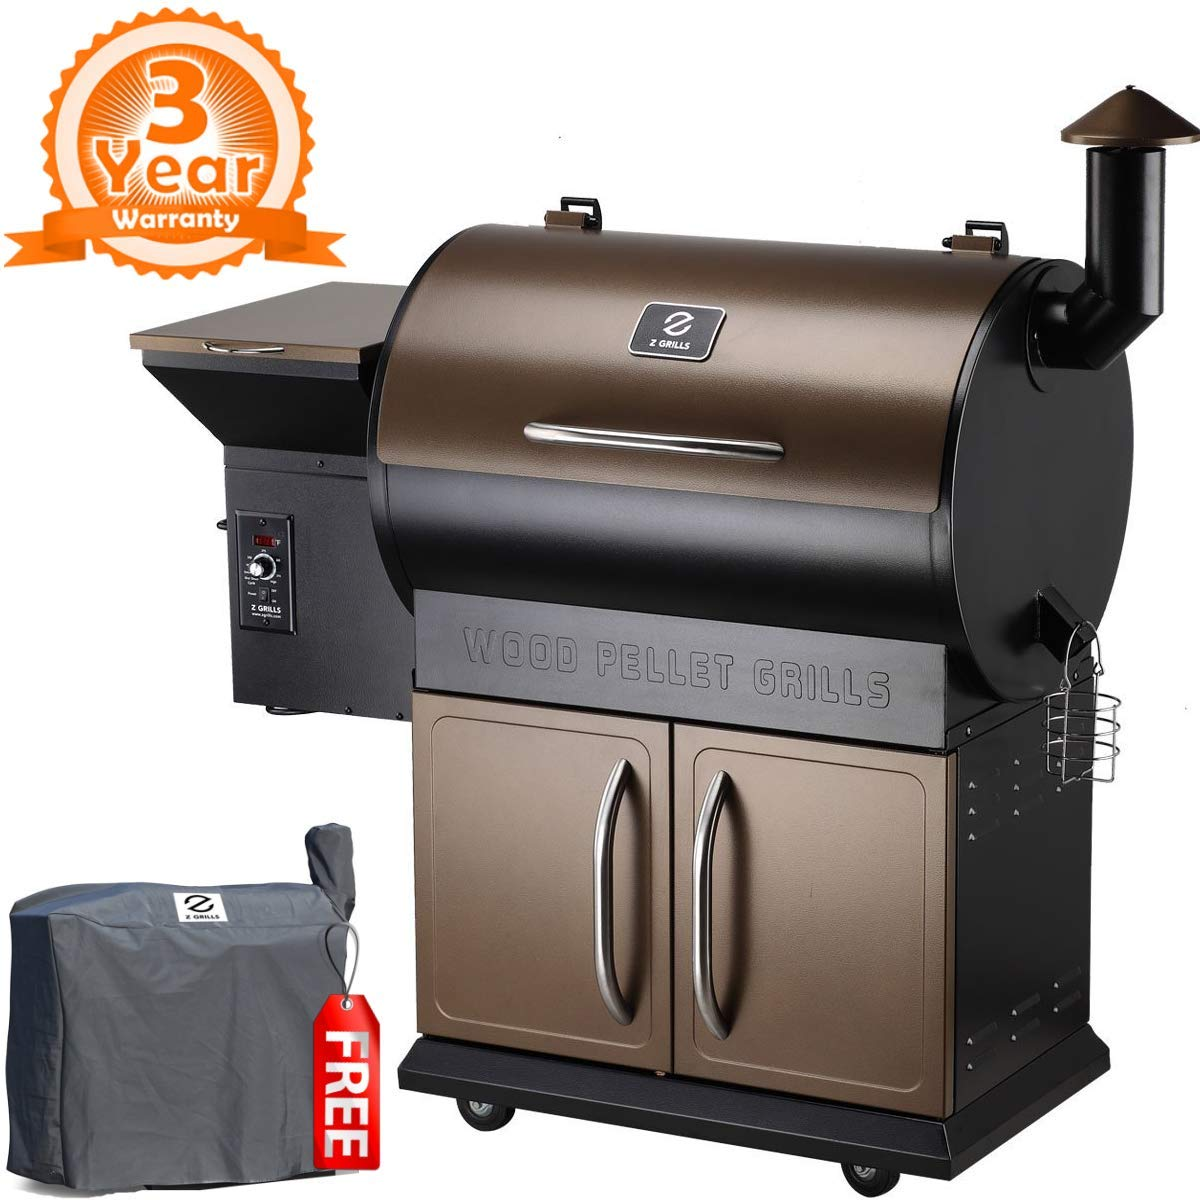 Z GRILLS ZPG-700D 2019 Upgrade Wood Pellet Grill & Smoker, 8 in 1 BBQ Grill Auto Temperature Control, 700 sq inch Cooking Area, Bronze & Black by Z GRILLS